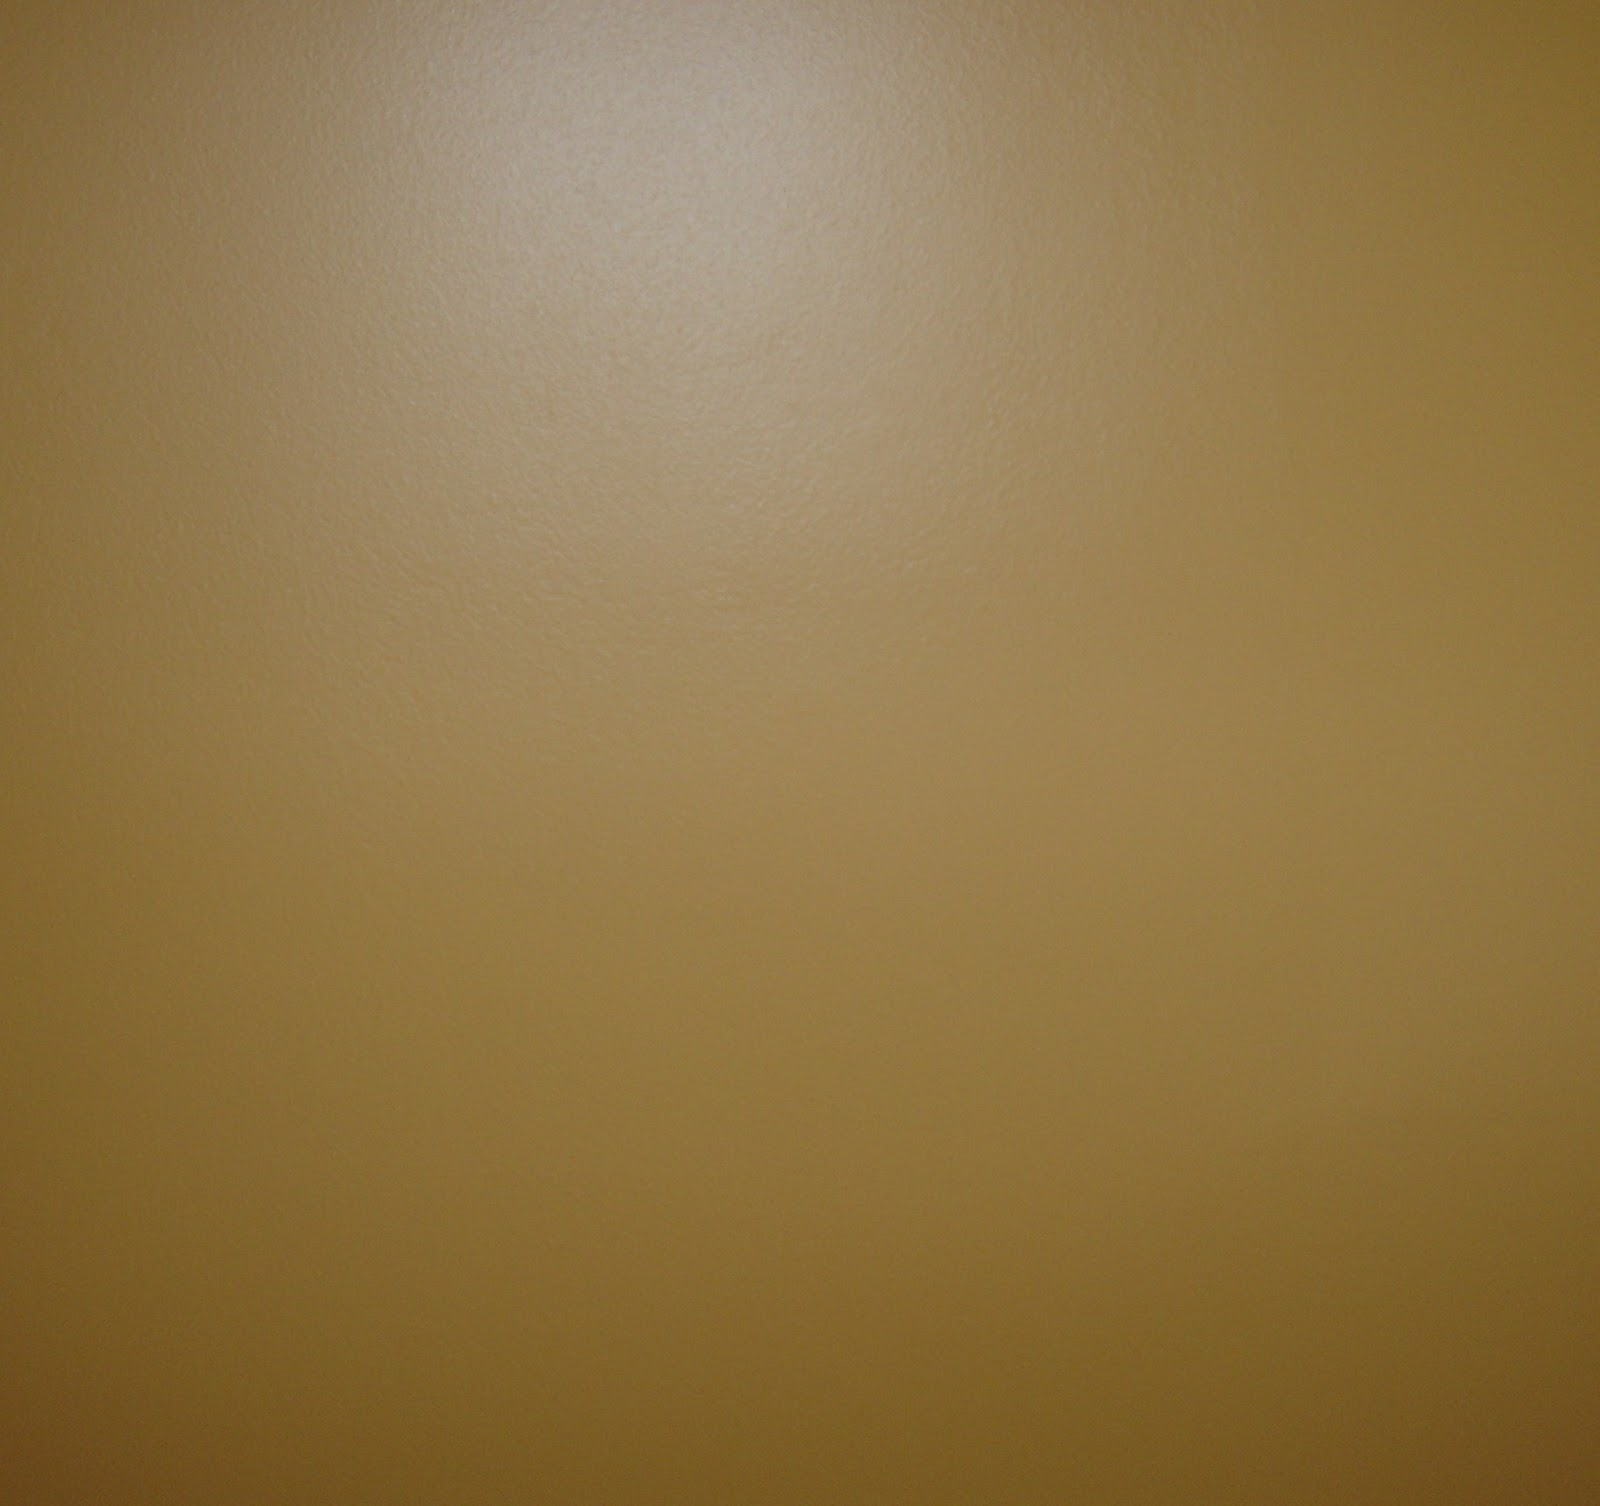 Blum grady signature for Light brown wall color